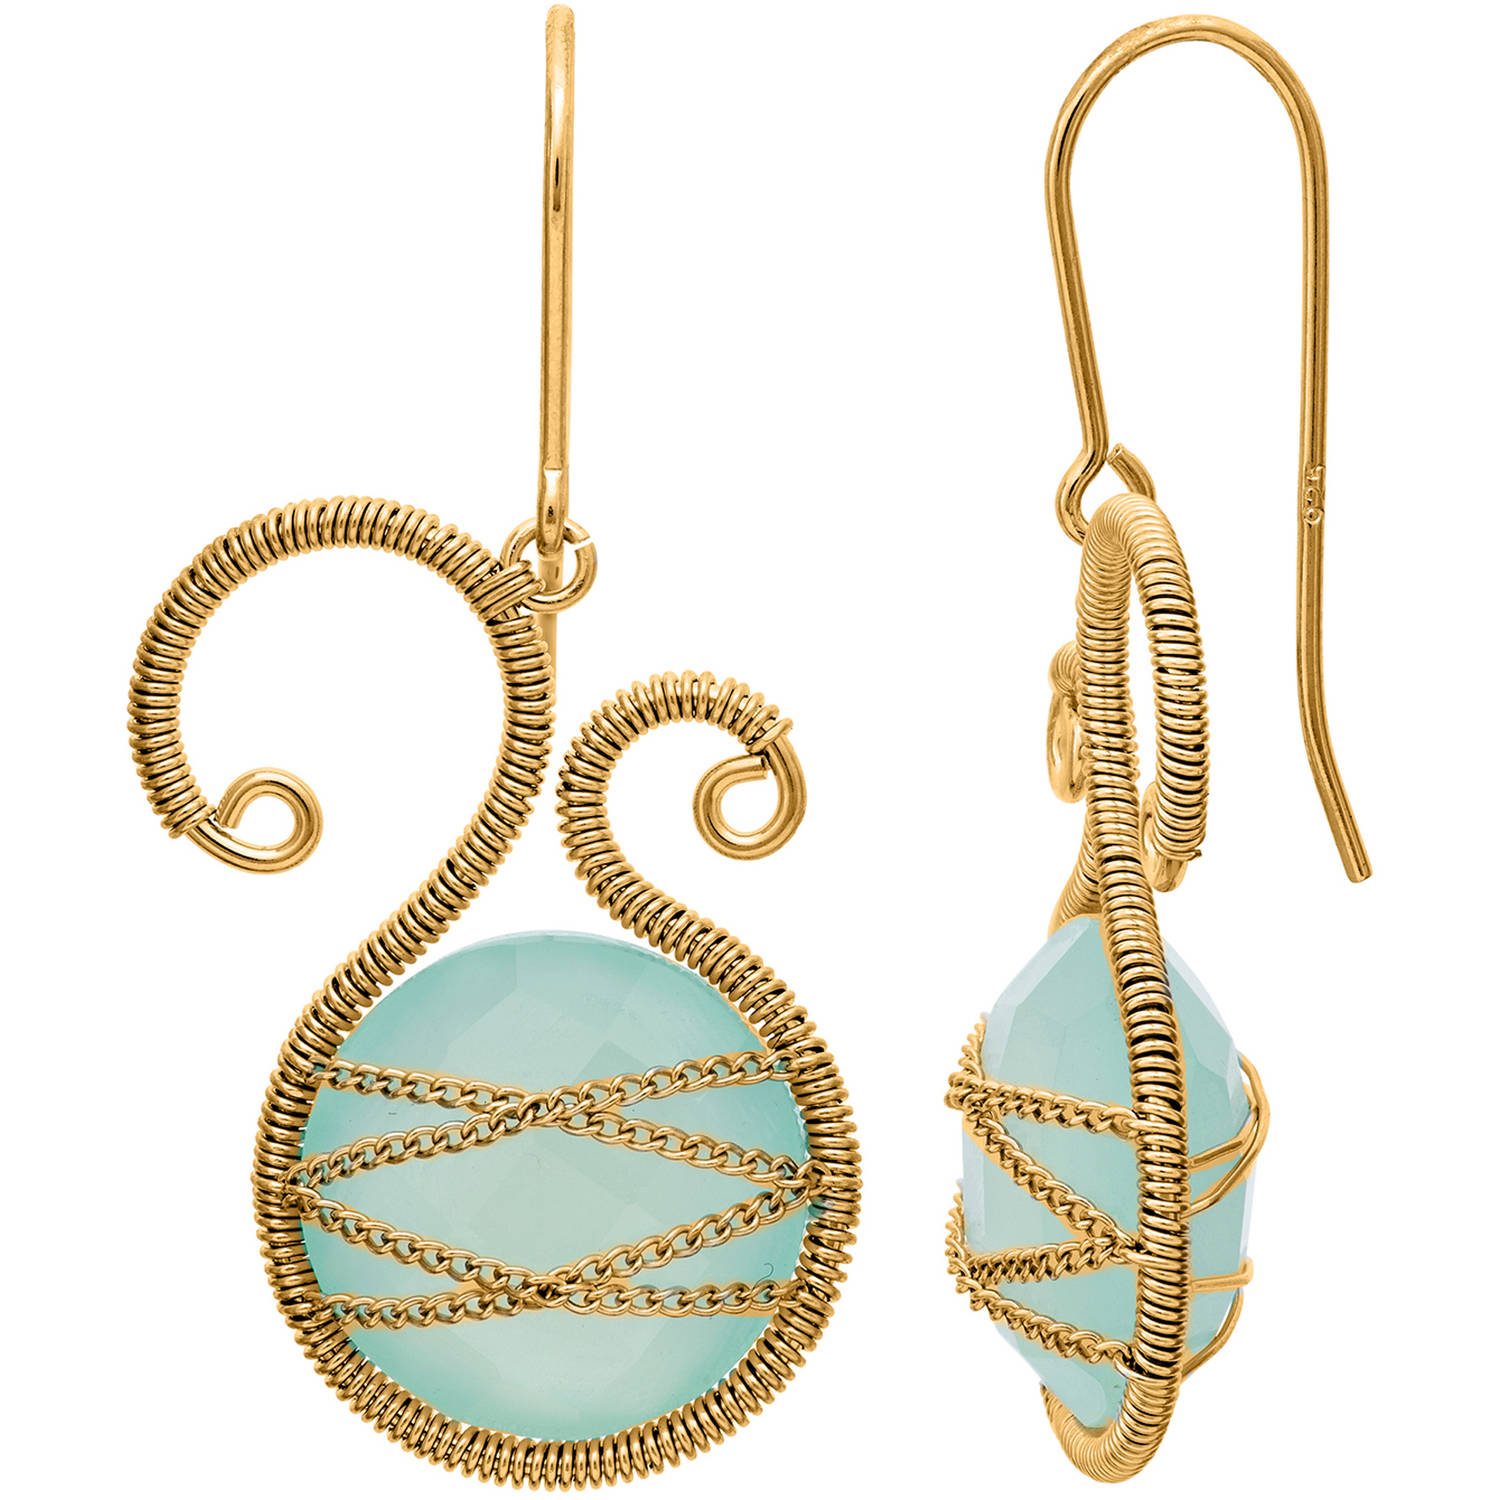 Image of 5th & Main 18kt Gold over Sterling Silver Hand-Wrapped Asymmetric Chalcedony Stone Earrings